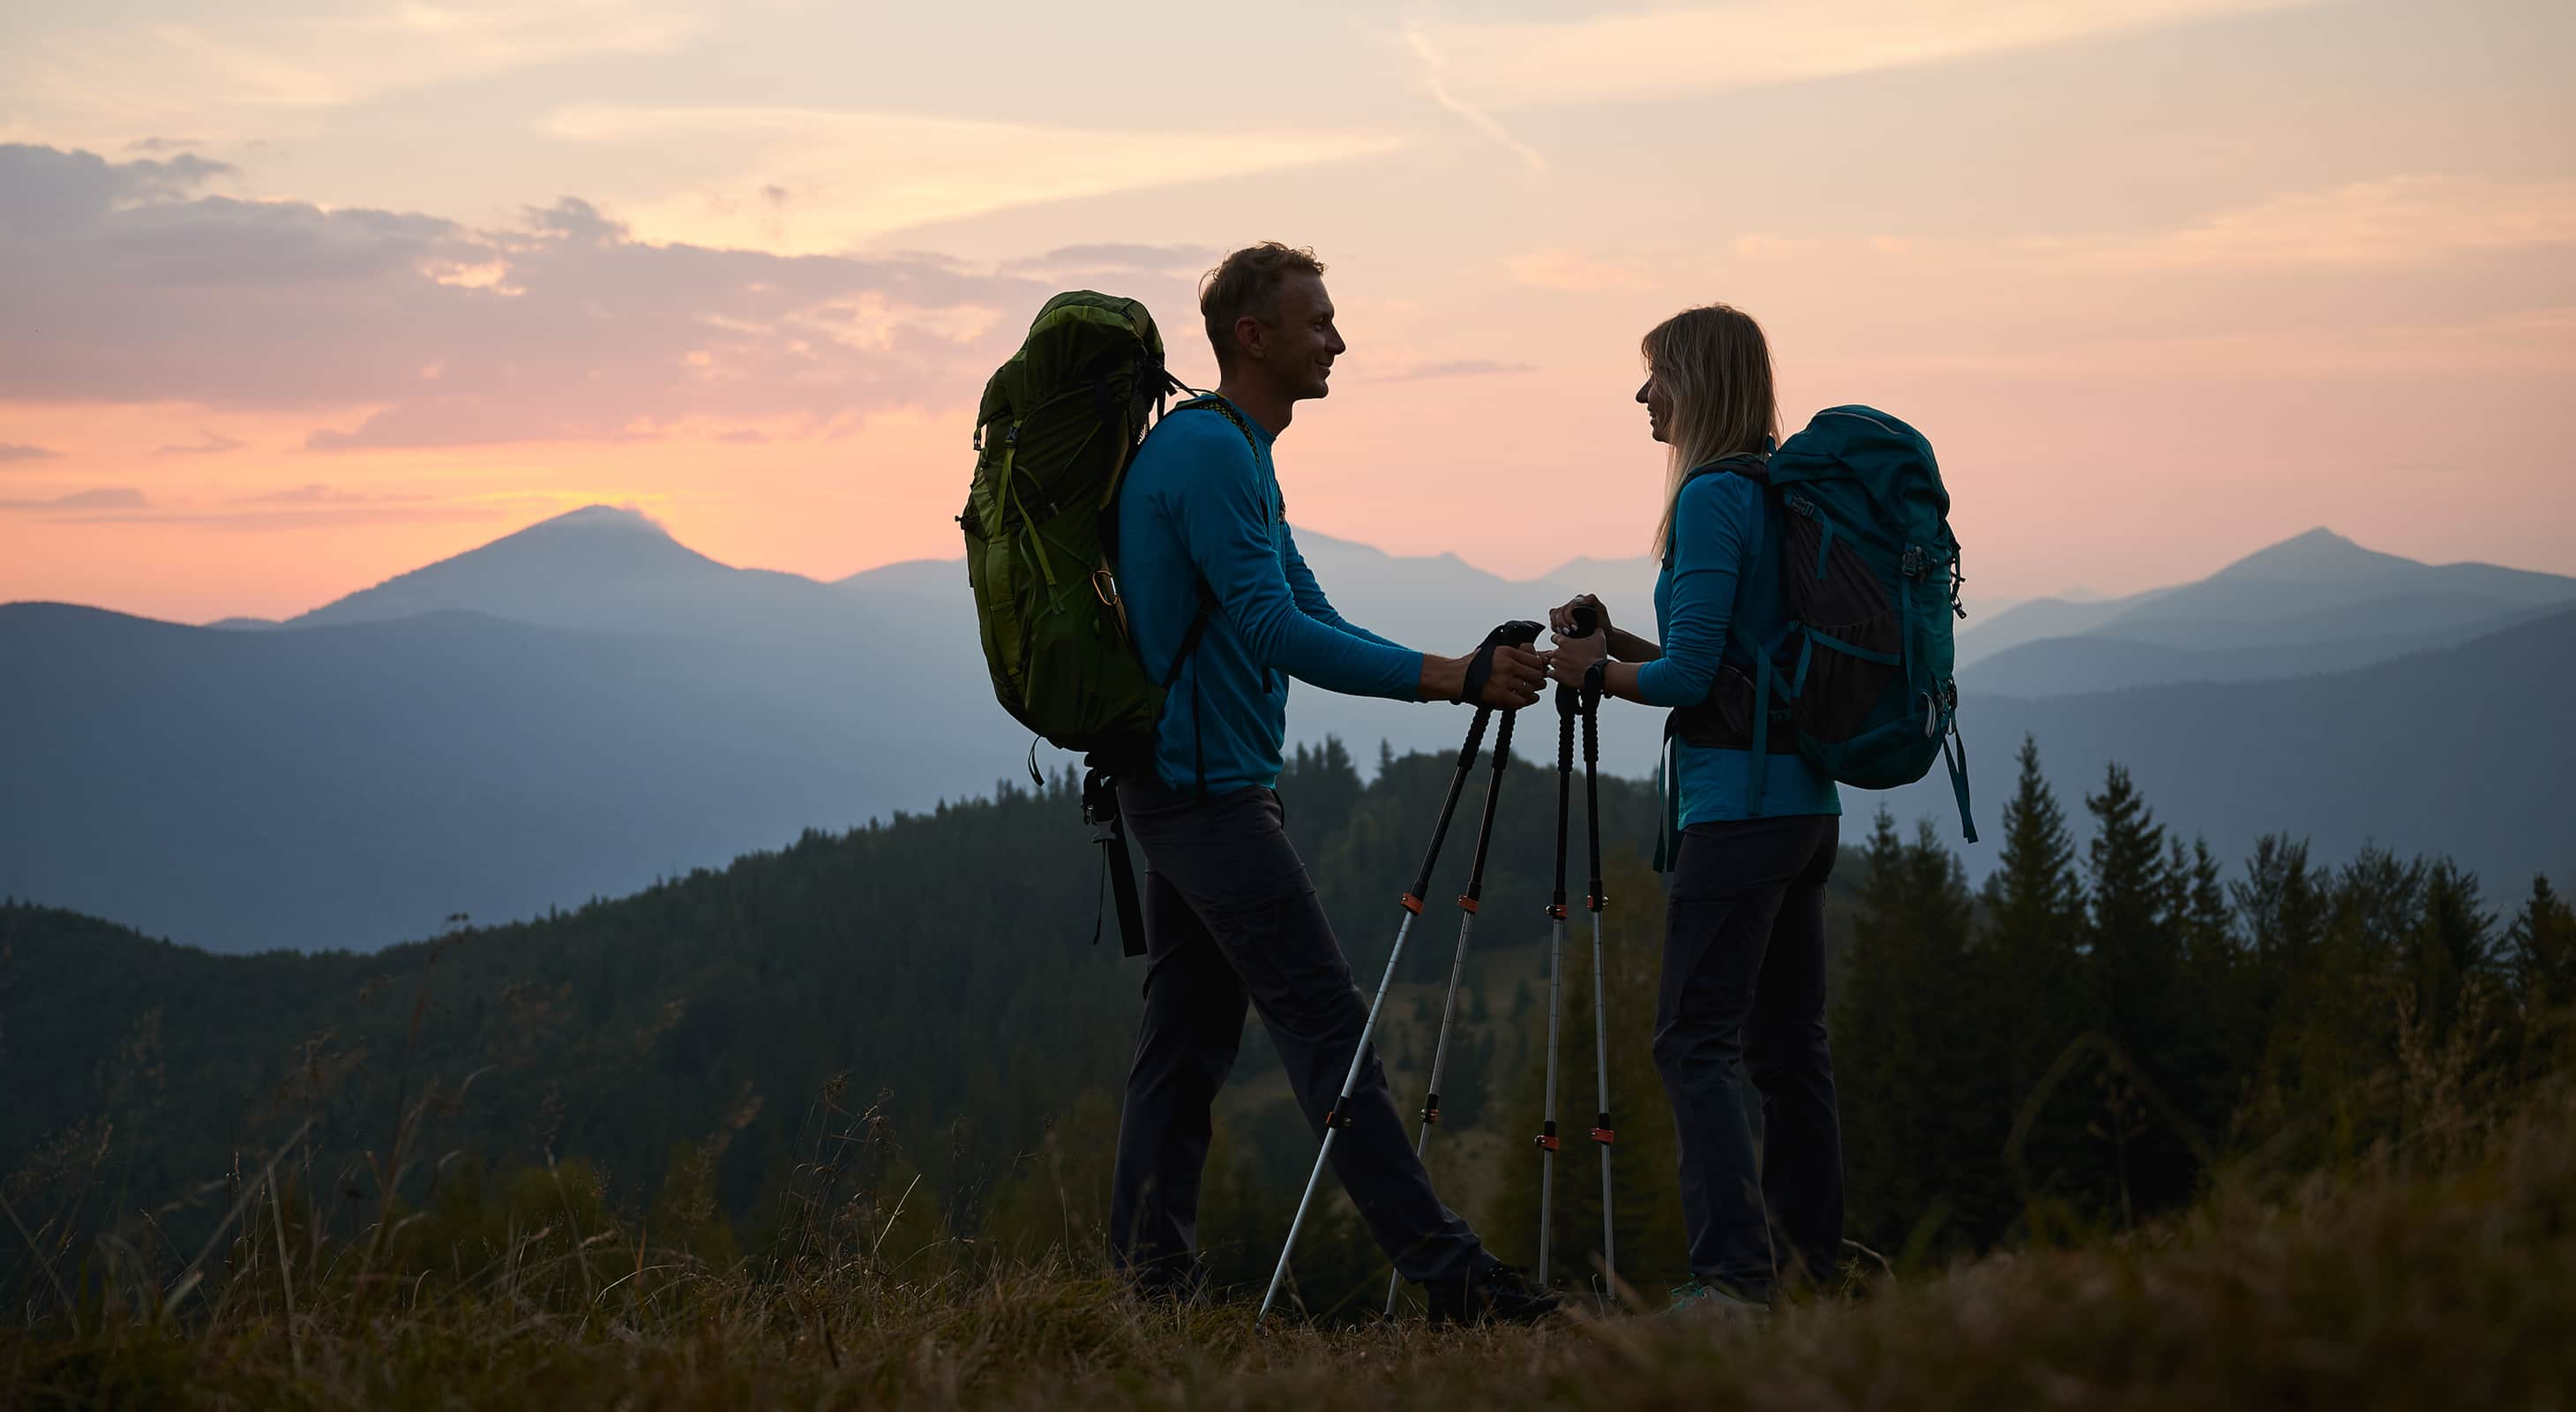 Couple hiking - Top Things to Do near Boone, NC